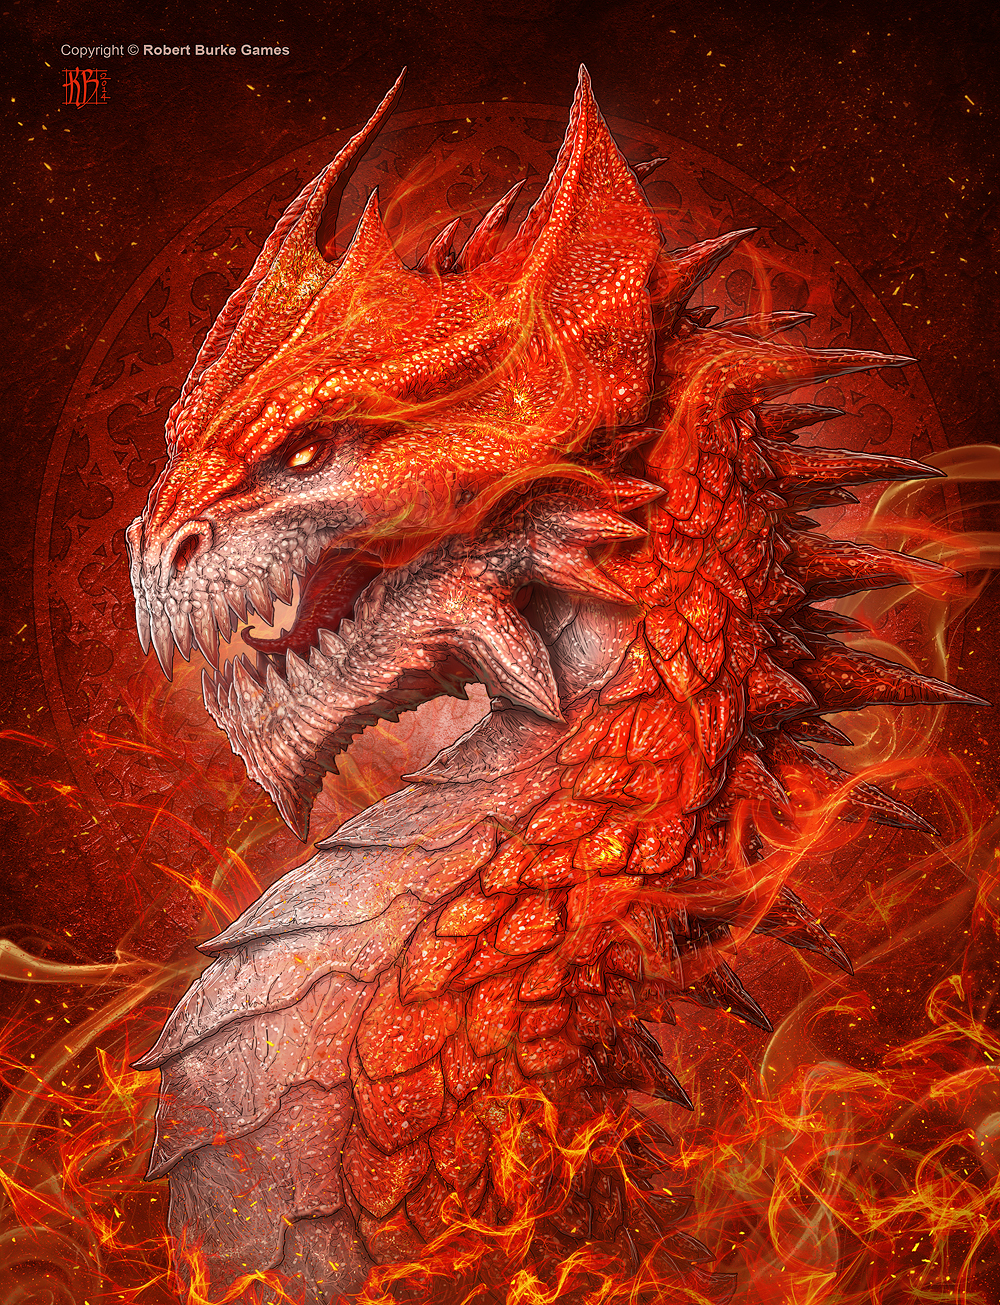 Kerembeyit sun dragon 1 0cd1eea9 a1or